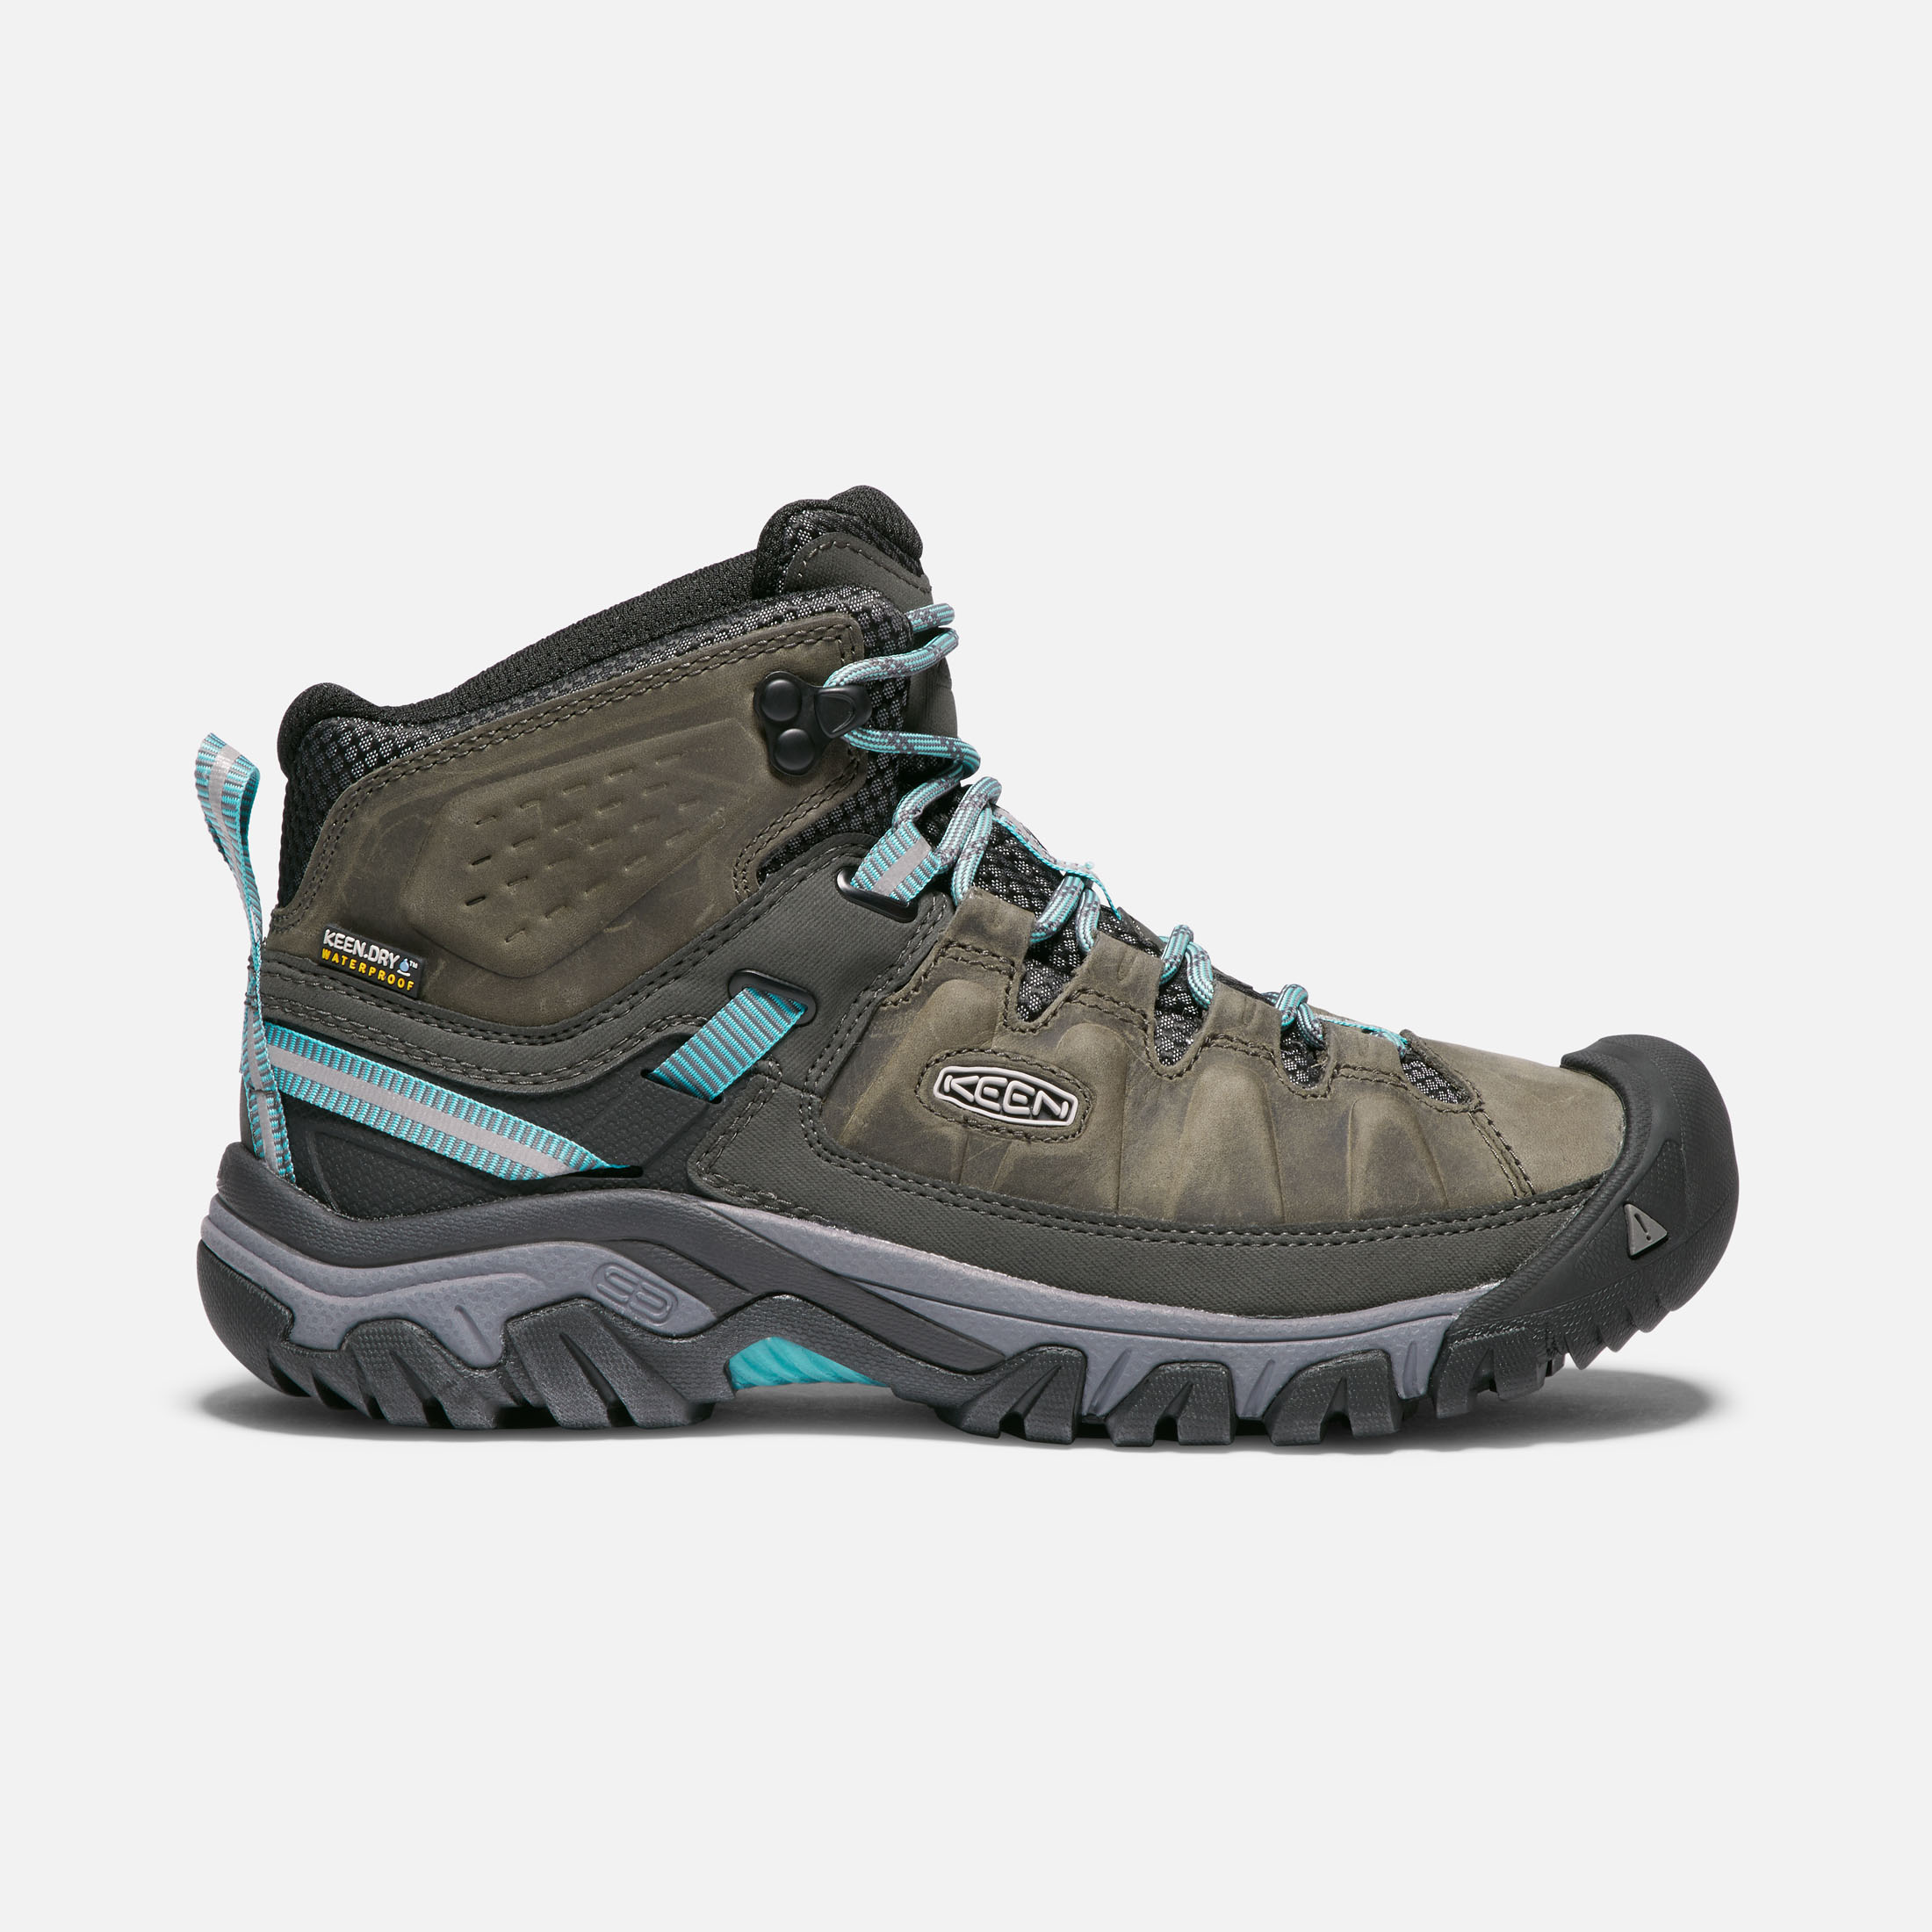 a9c1ce9a9d2 Women's Waterproof Hiking Boots - Targhee III | KEEN Footwear